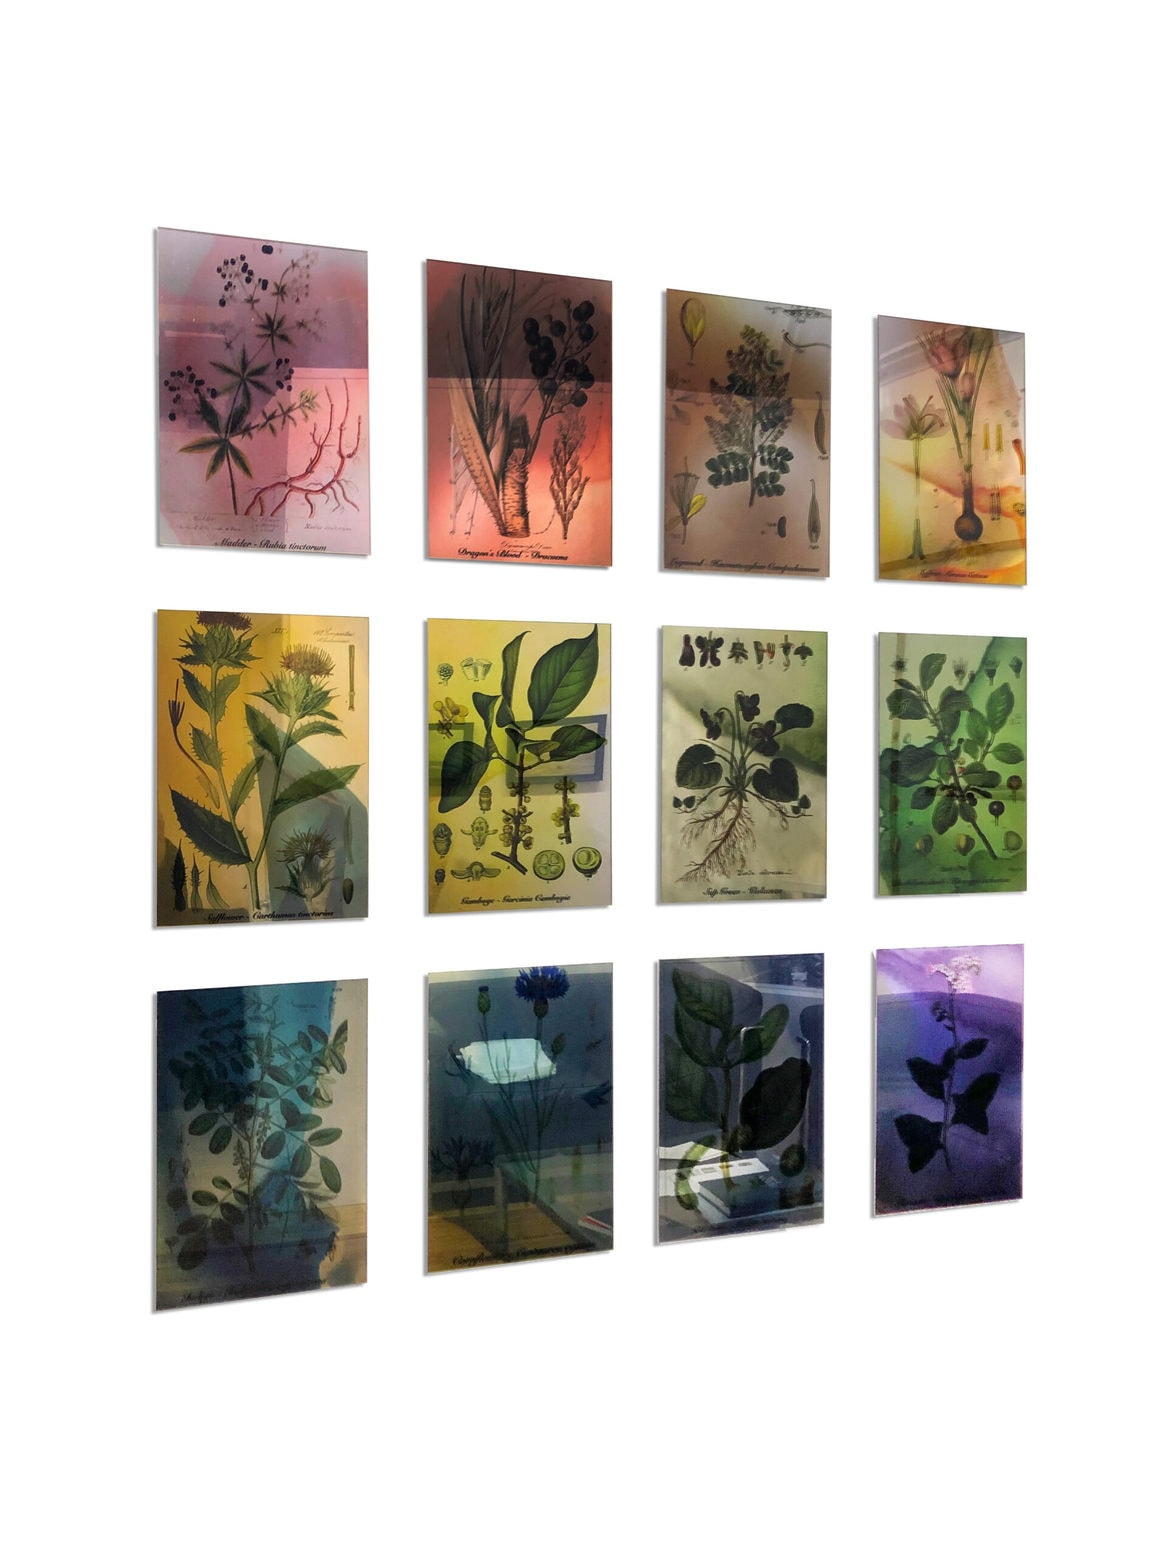 'Plants Bleed Lakes', 2020, duraclear on mirror, 12 panels, 29 x 19 cm each, 97 x 93 cm overall, edition of 3 + 1AP